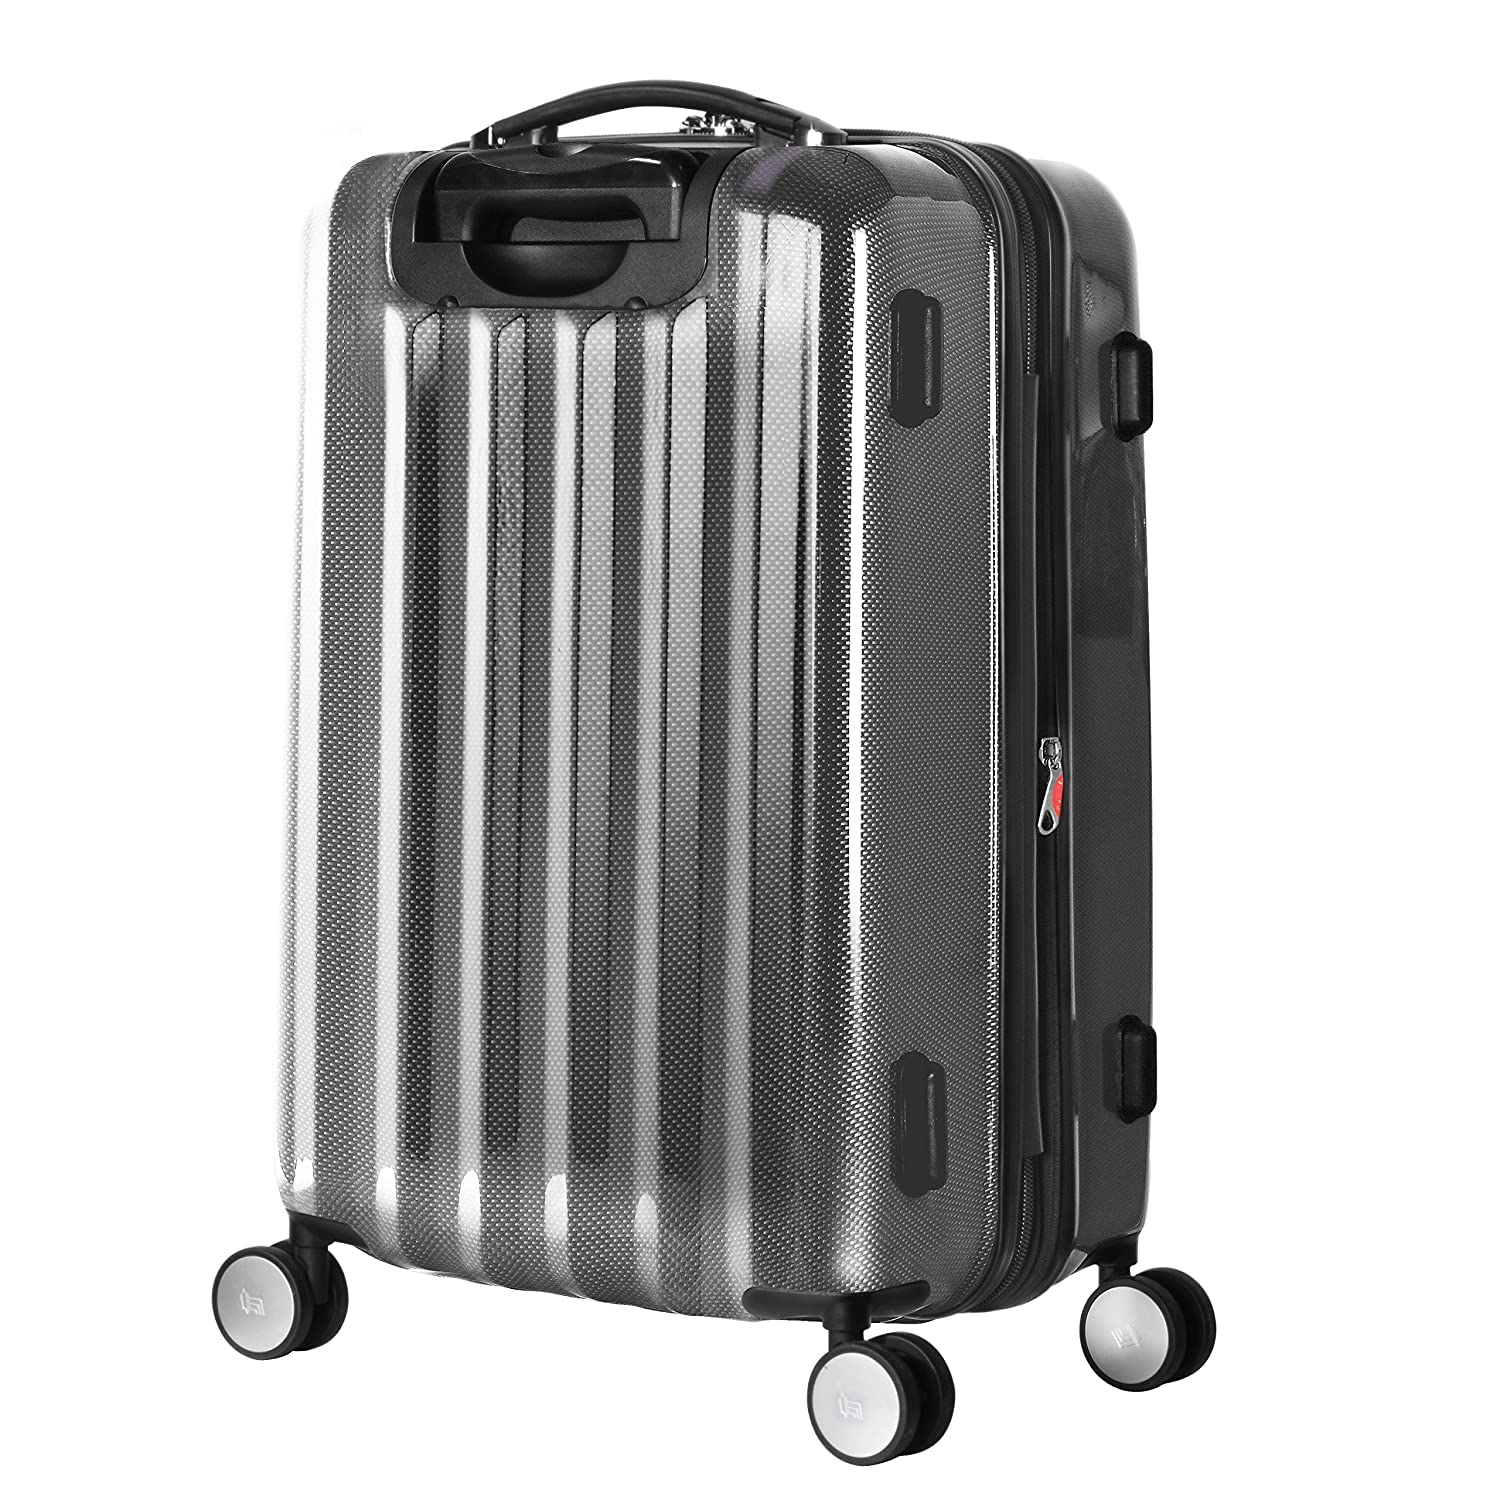 619b7407e Olympia Luggage Titan 29-Inch Expandable Spinner, Black, One Size:  Amazon.ca: Luggage & Bags